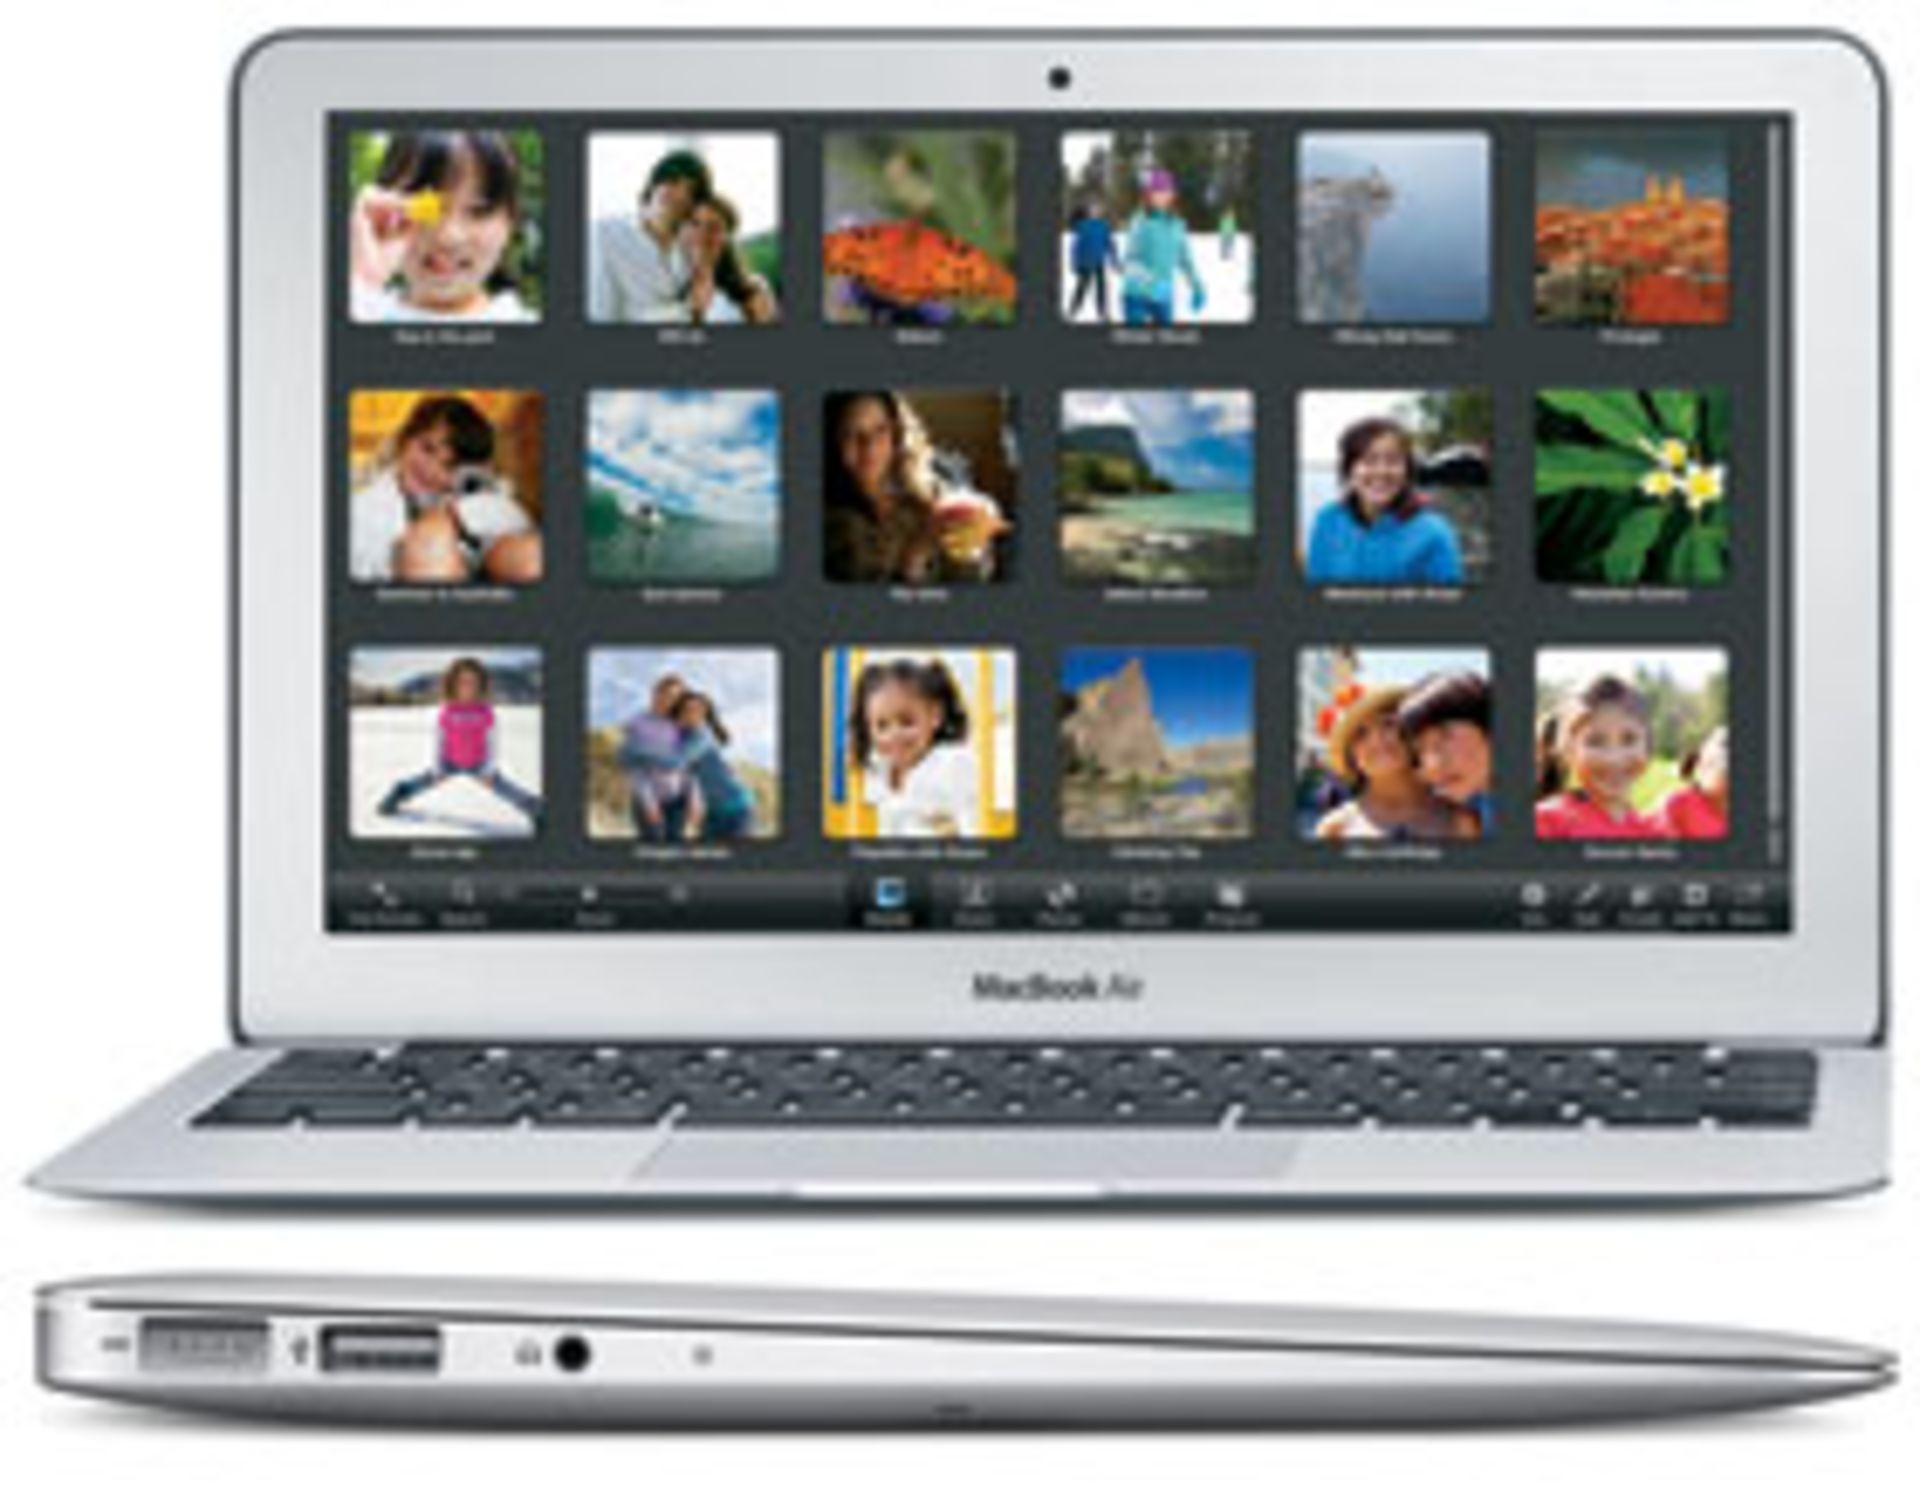 Lot 60015 - V Grade B Macbook Air 11.6 Inch Core 2 Duo - 64GB SSD - A1370 - Available Approx 7 Working Days